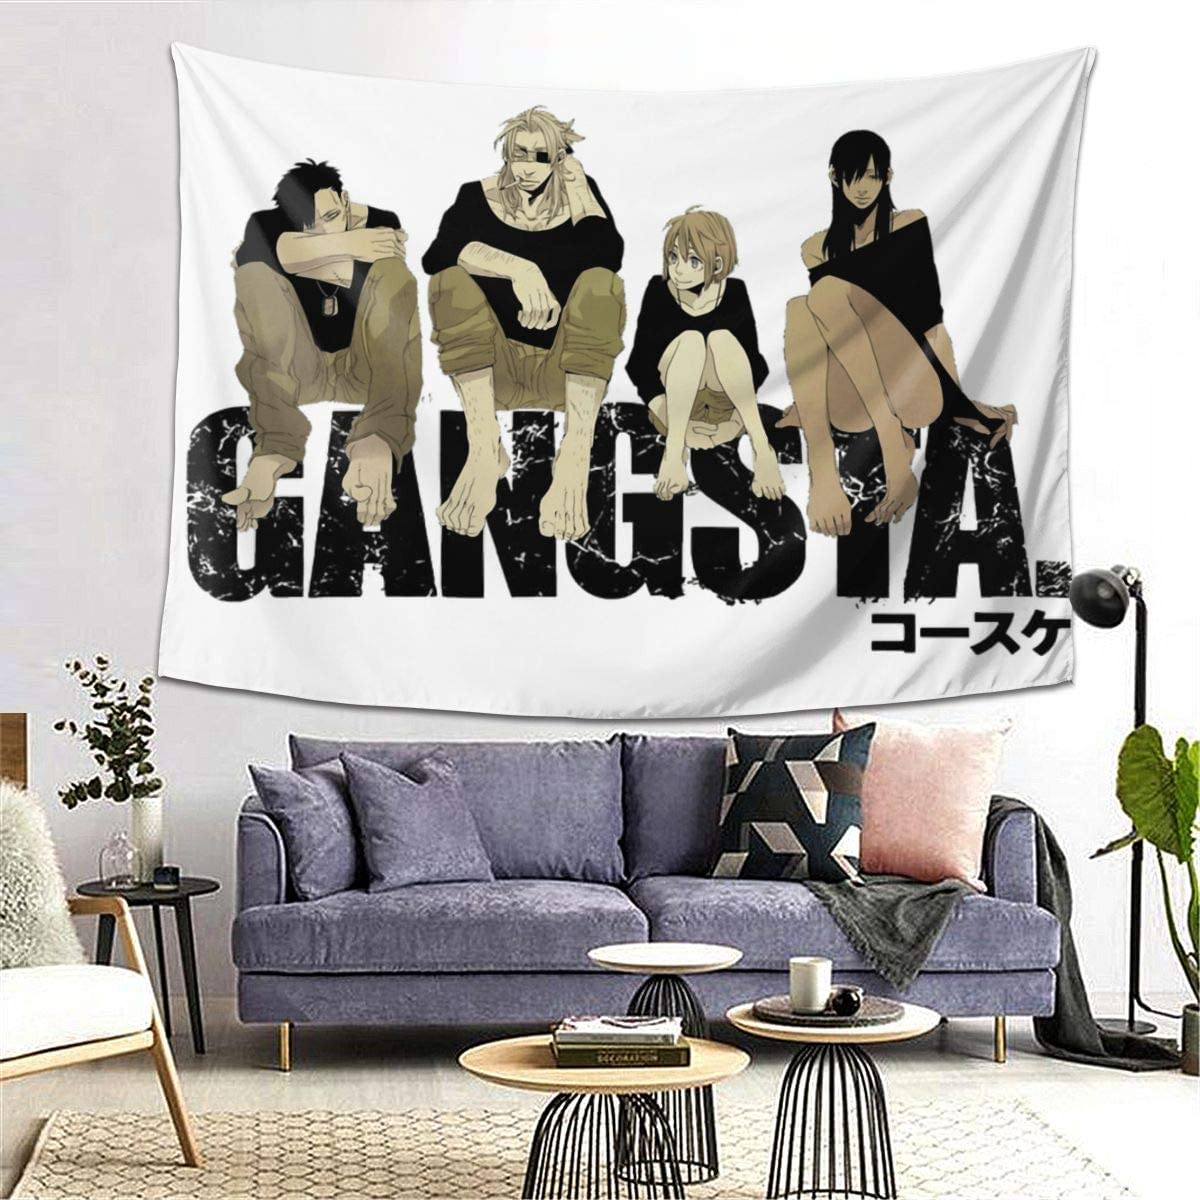 Anime & Gangsta Anime Manga Classic Wall Tapestry Apestry Album 3D Wall Hanging Art Home Decor Wave Tapestries